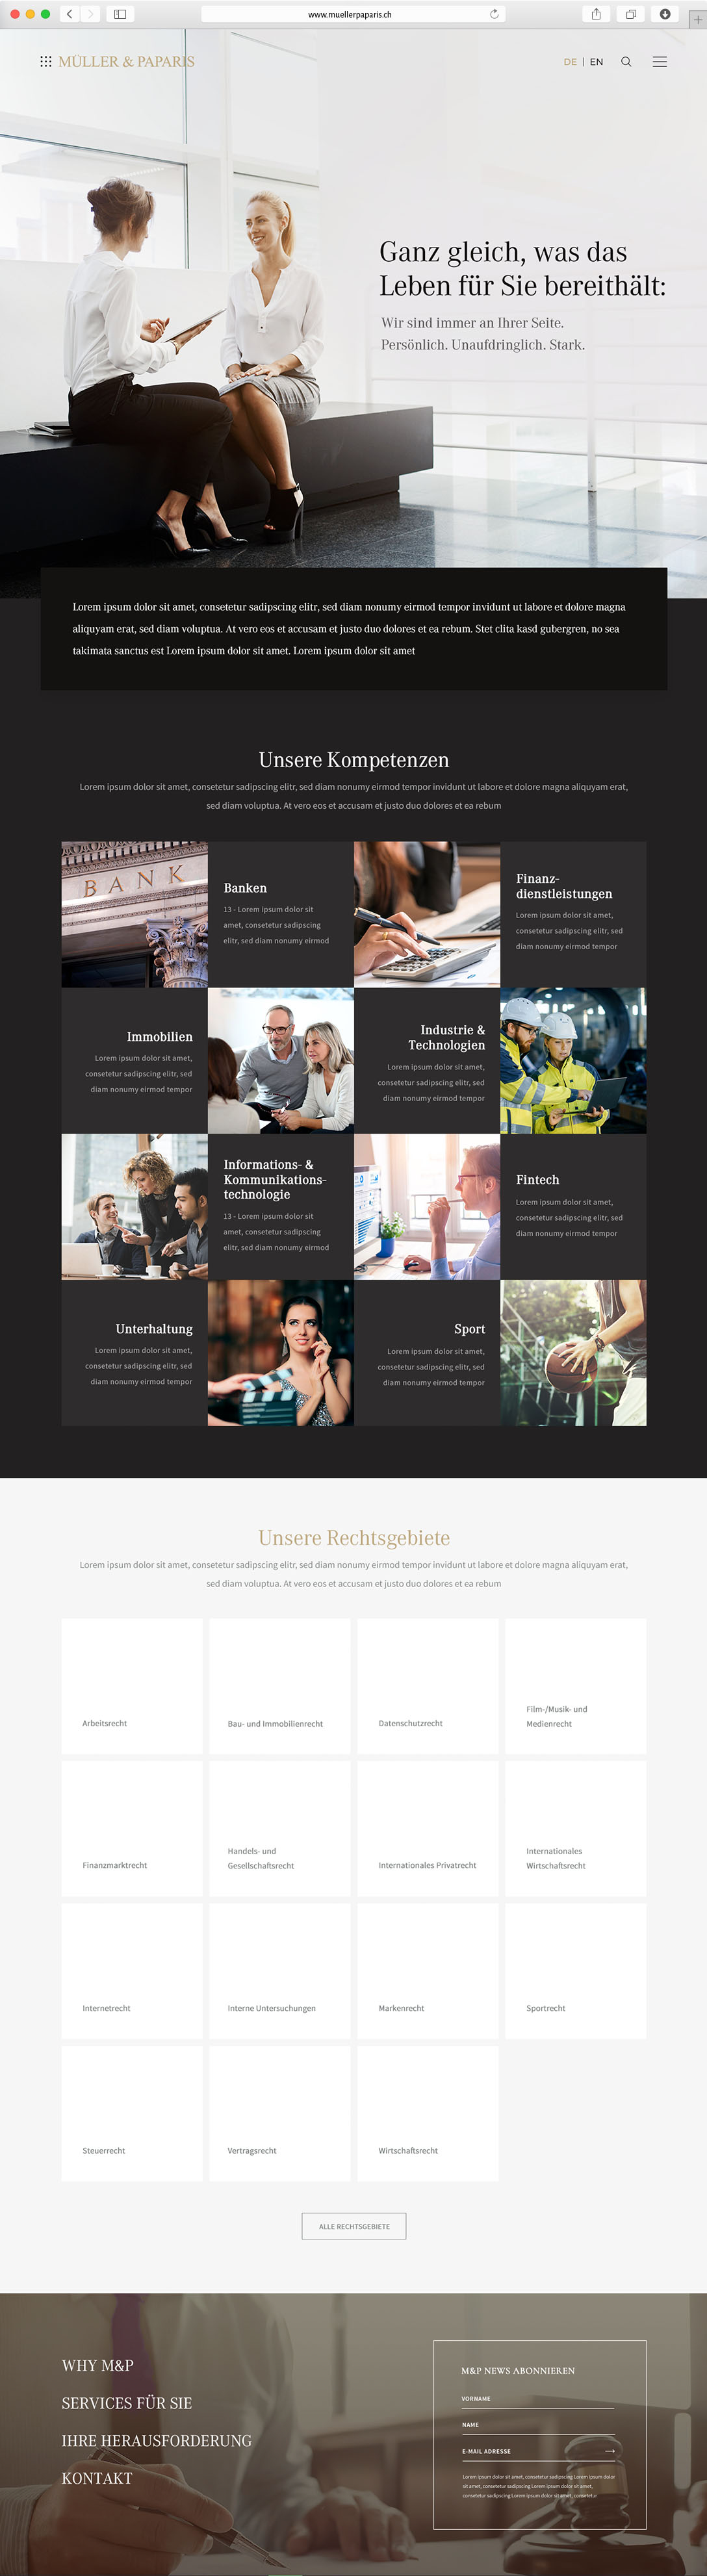 webdesign-bsp-muellerpaparis-full